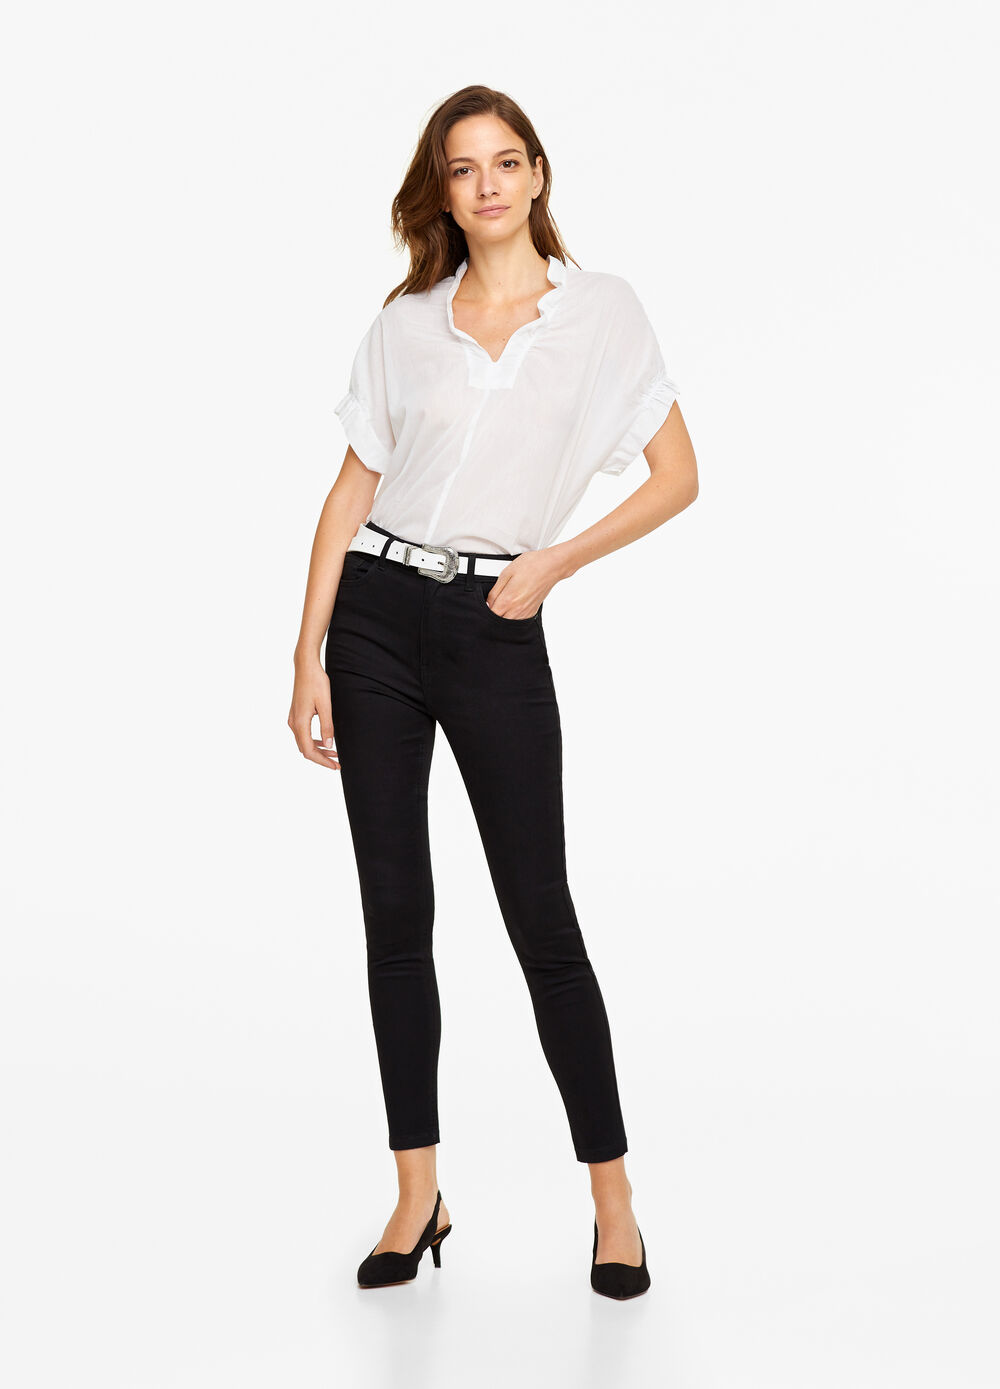 High-waist, super skinny-fit jeans